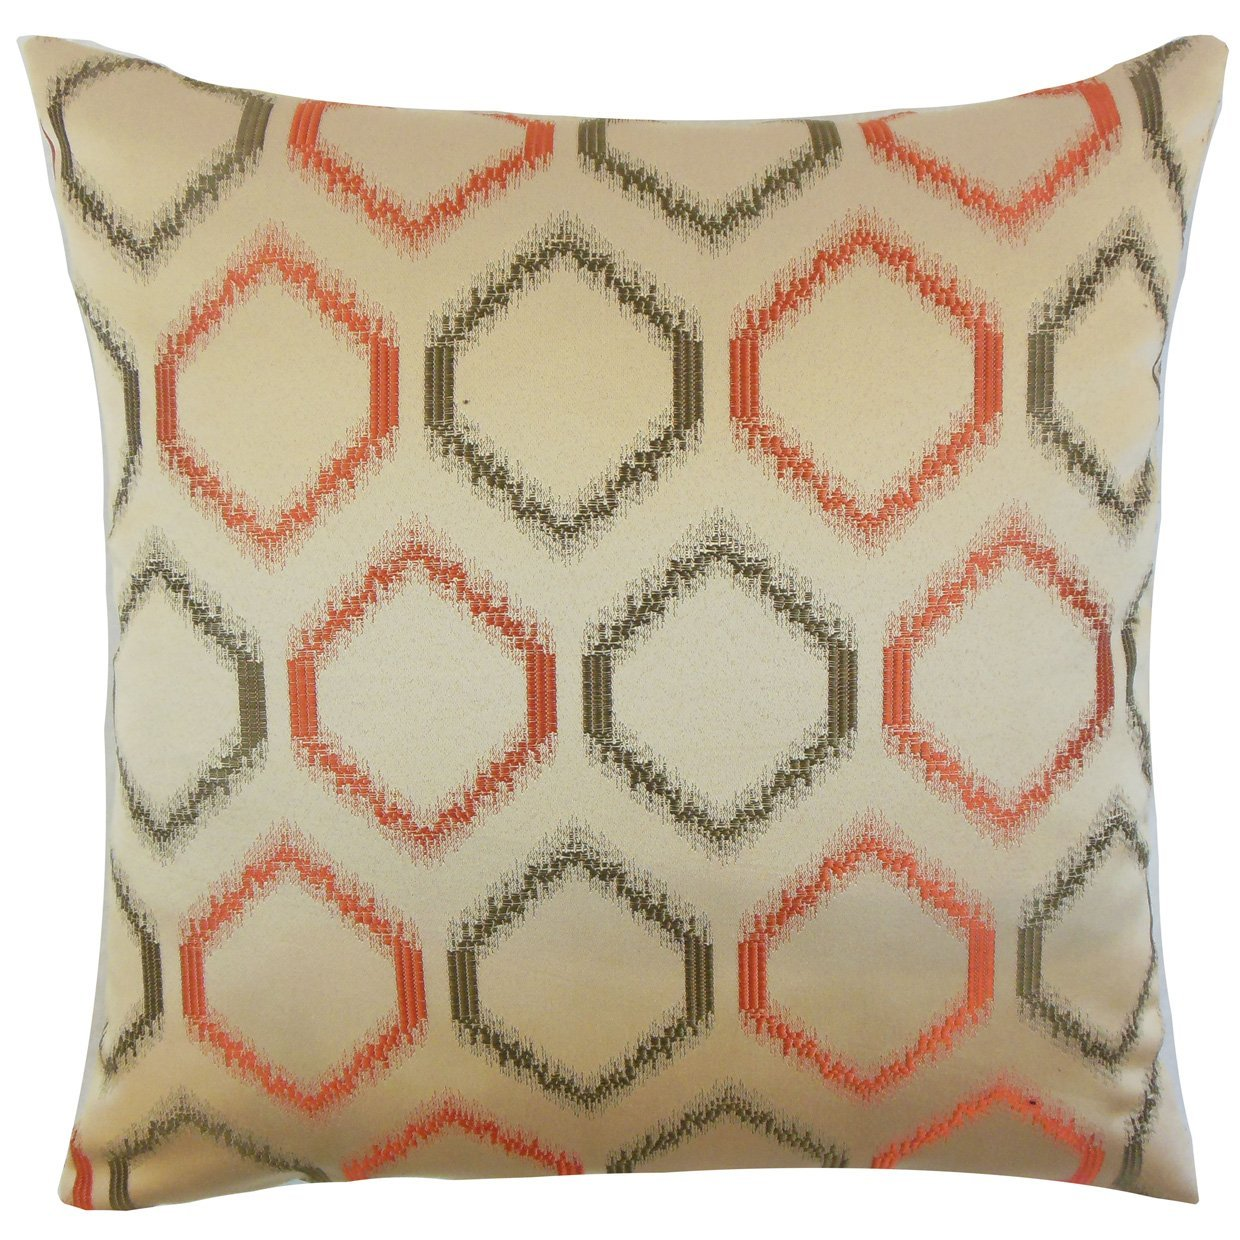 The Pillow Collection Connolly Geometric Bedding Sham Orange Queen/20' x 30'